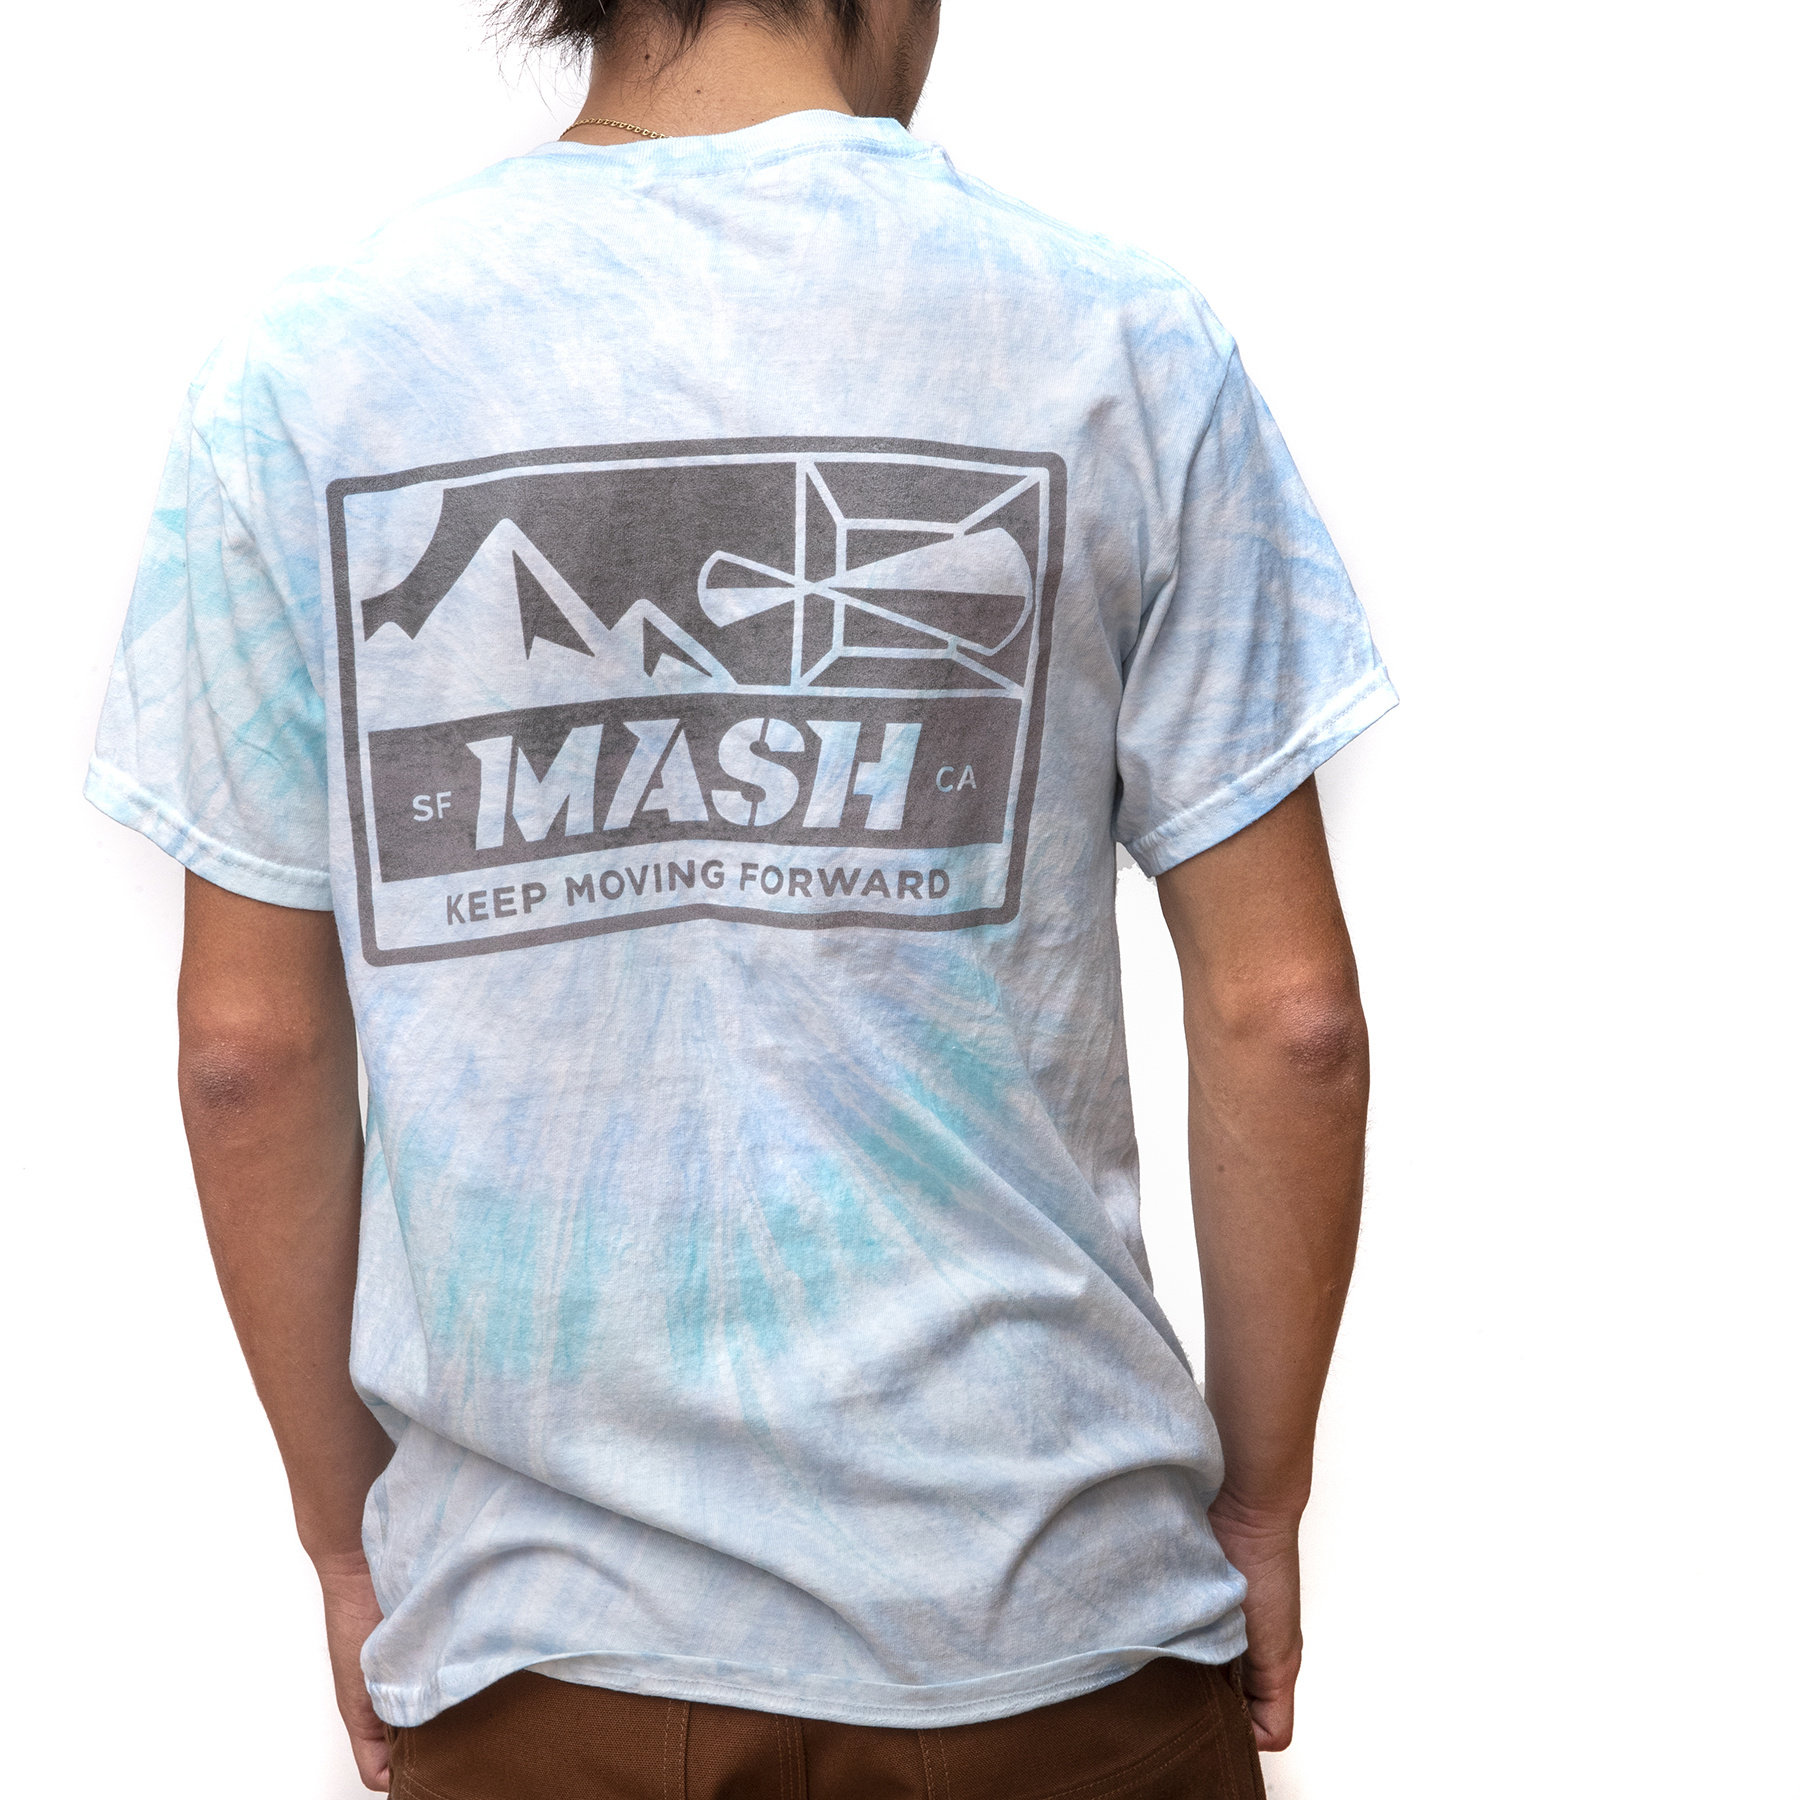 MASH Bolt T-Shirt Faded Tie Dye and Reflective